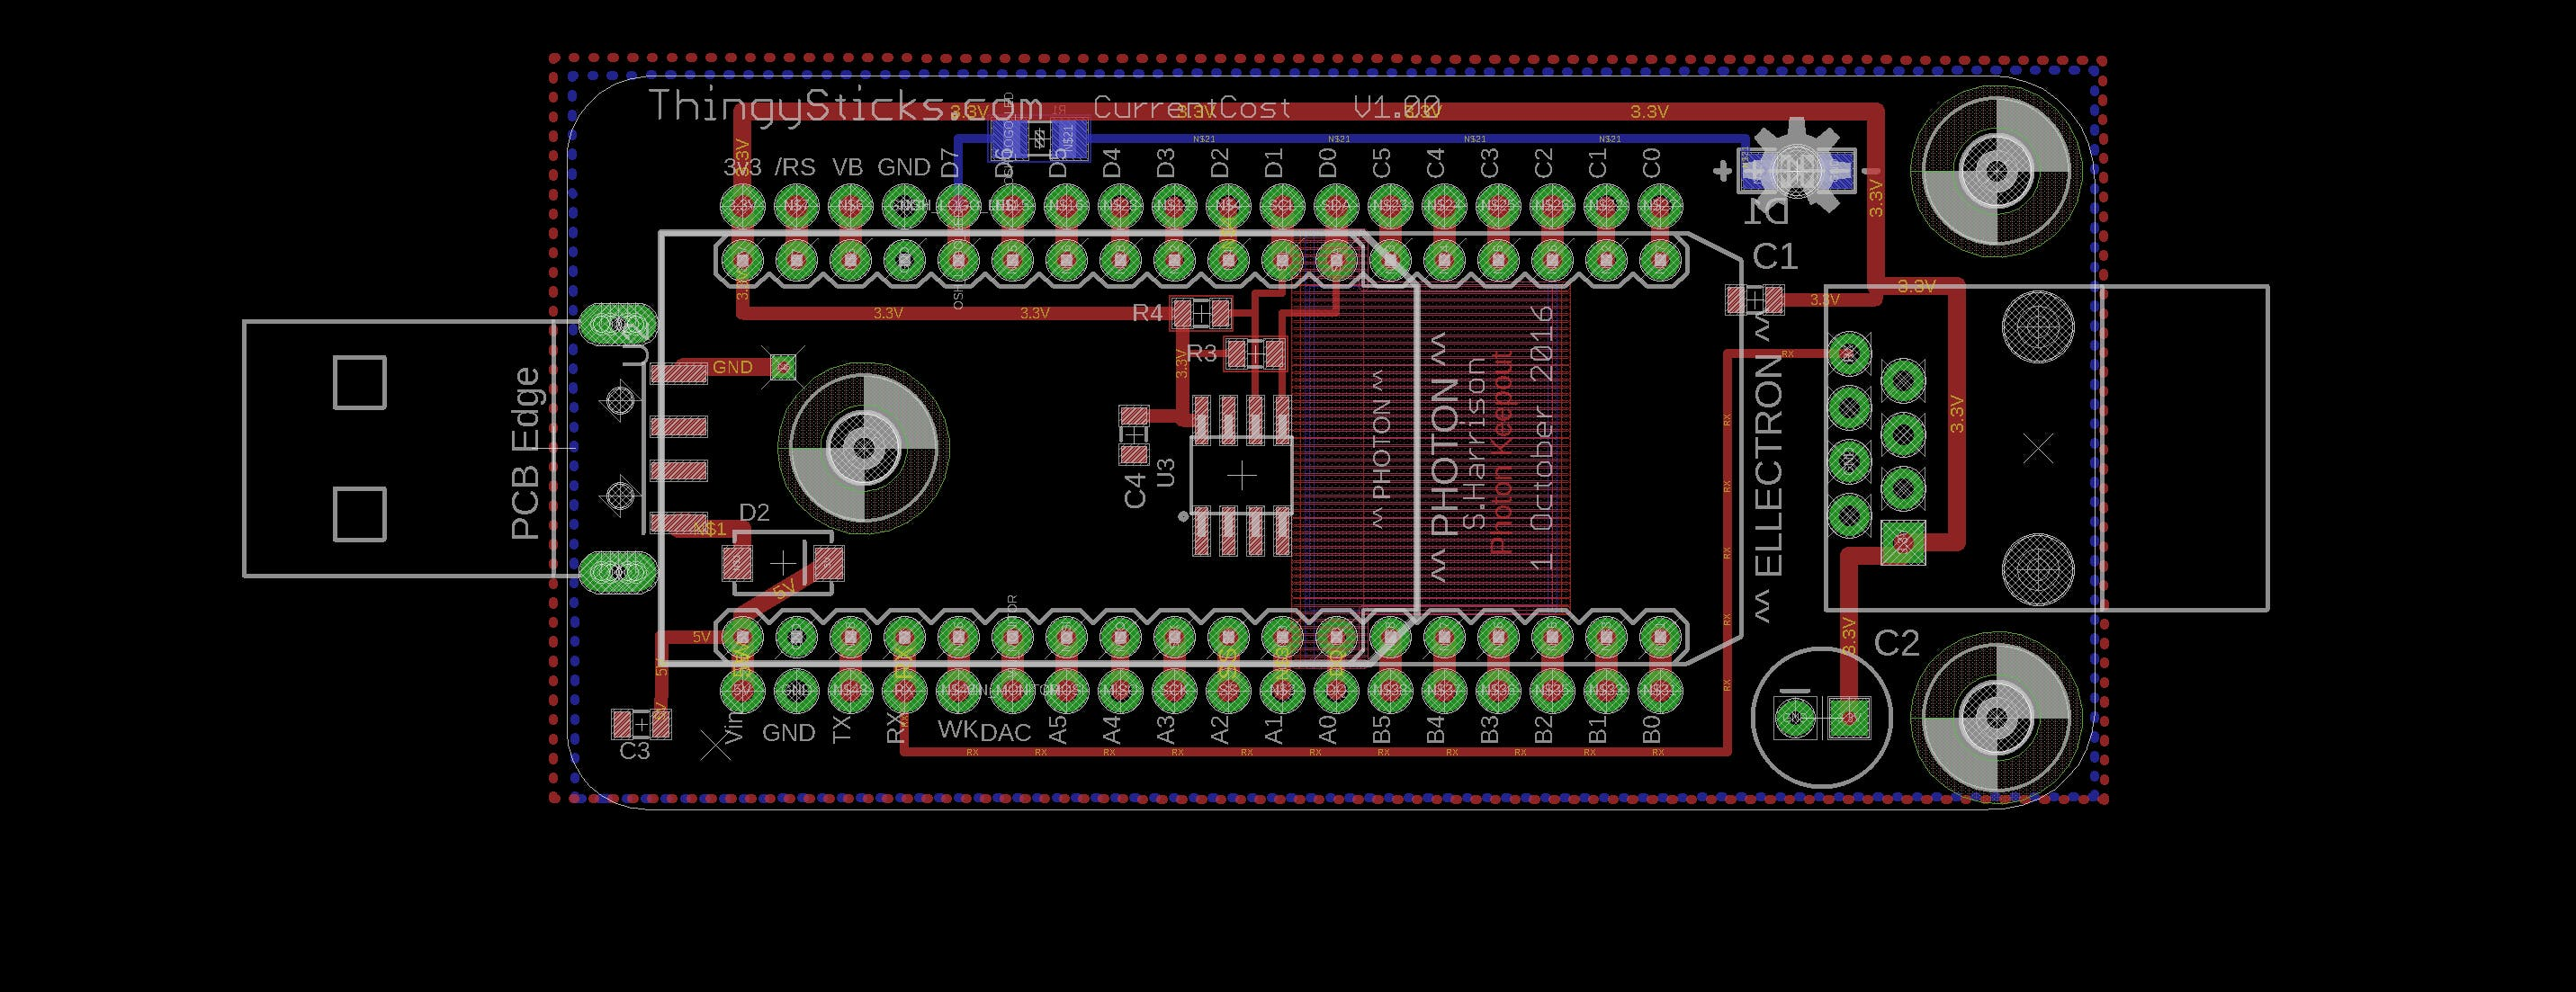 Photon to Current Cost PCB